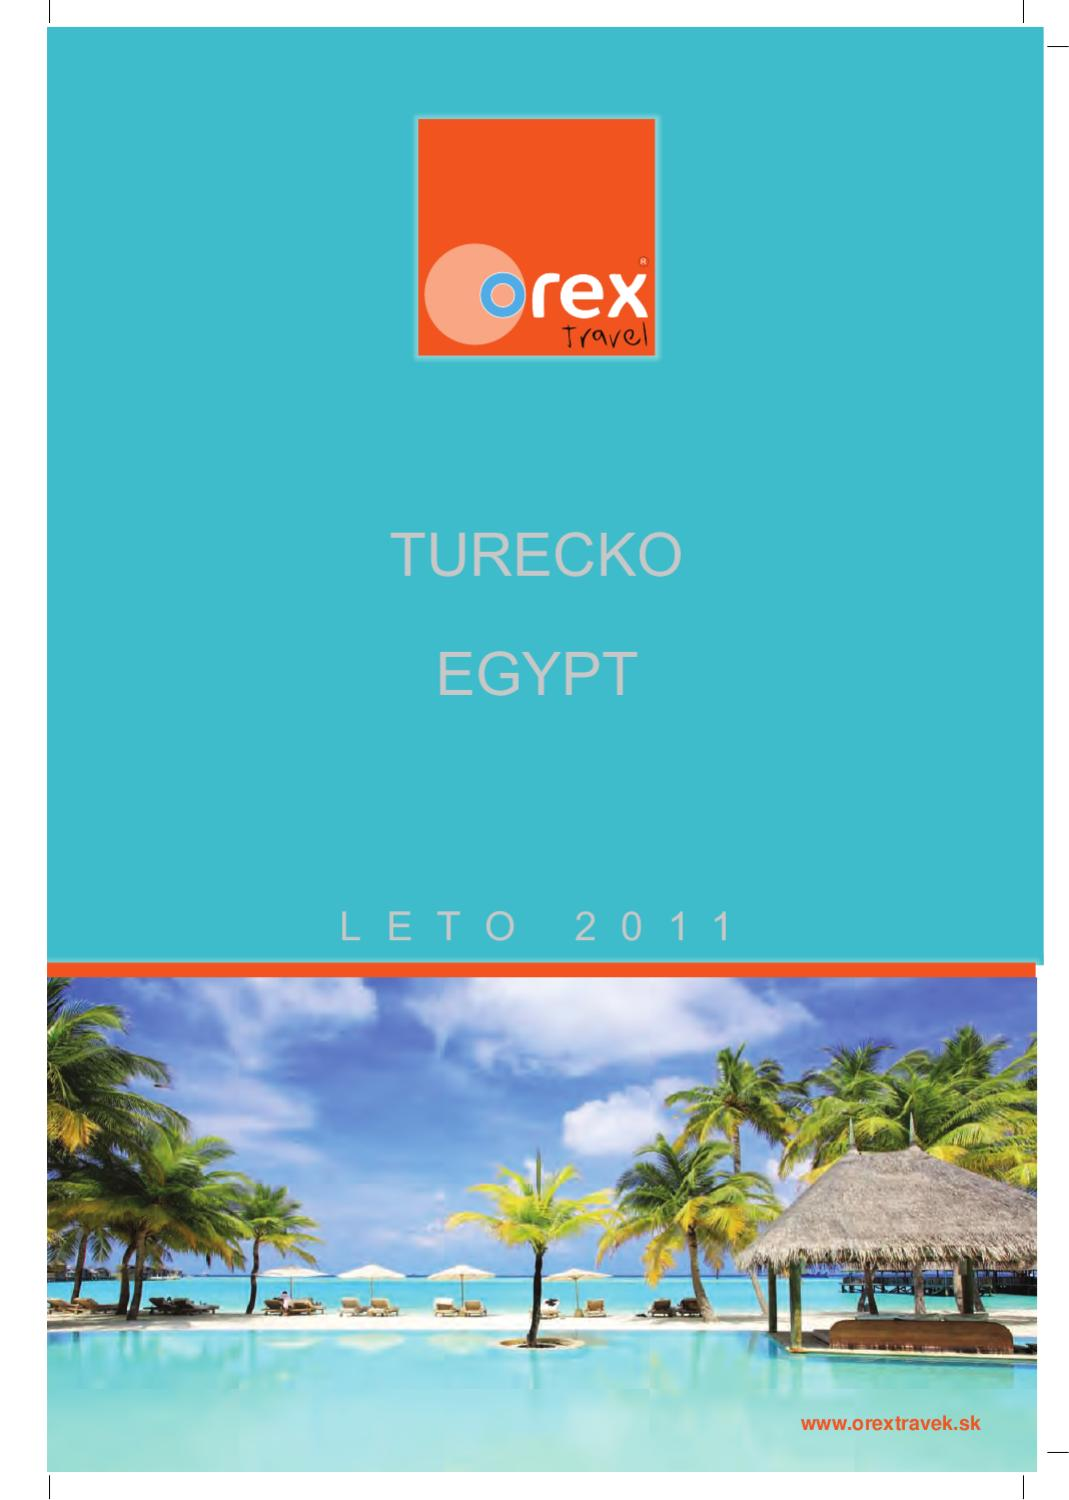 cb51b15d3981 Orex Travel Katalog by Ivan Bosmansky - issuu